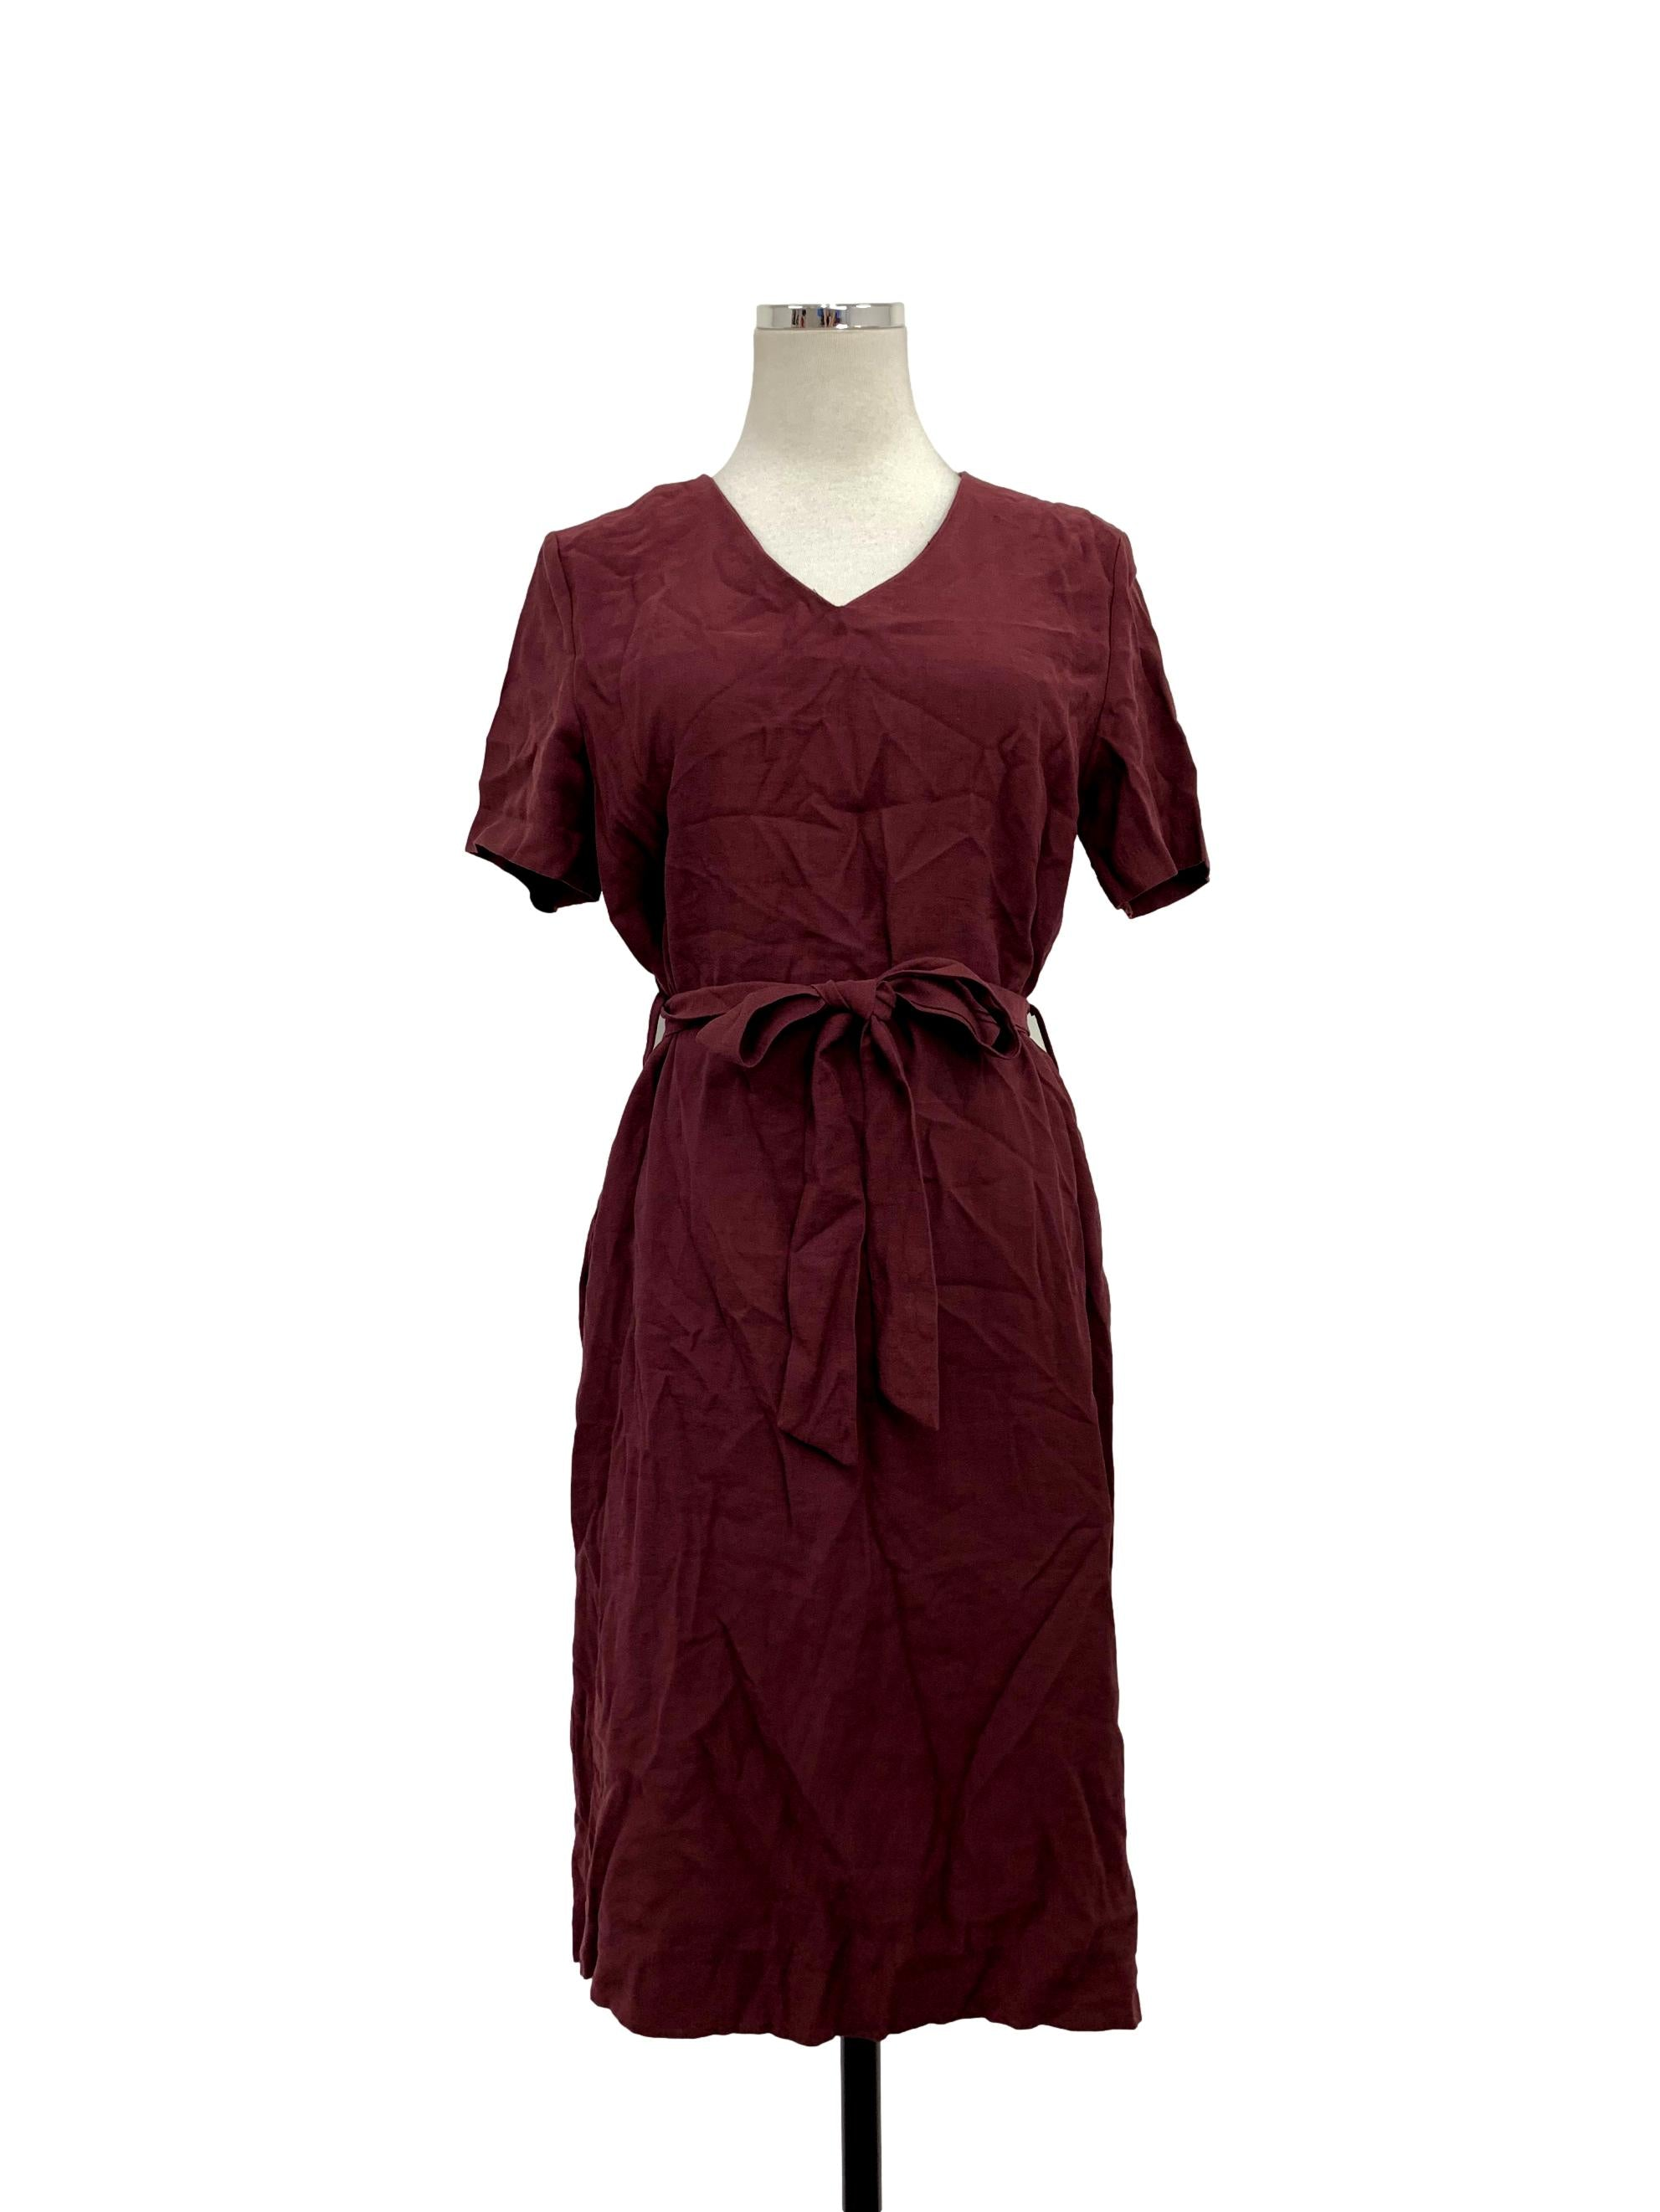 Maroon V-Neck Short Sleeve Midi Dress